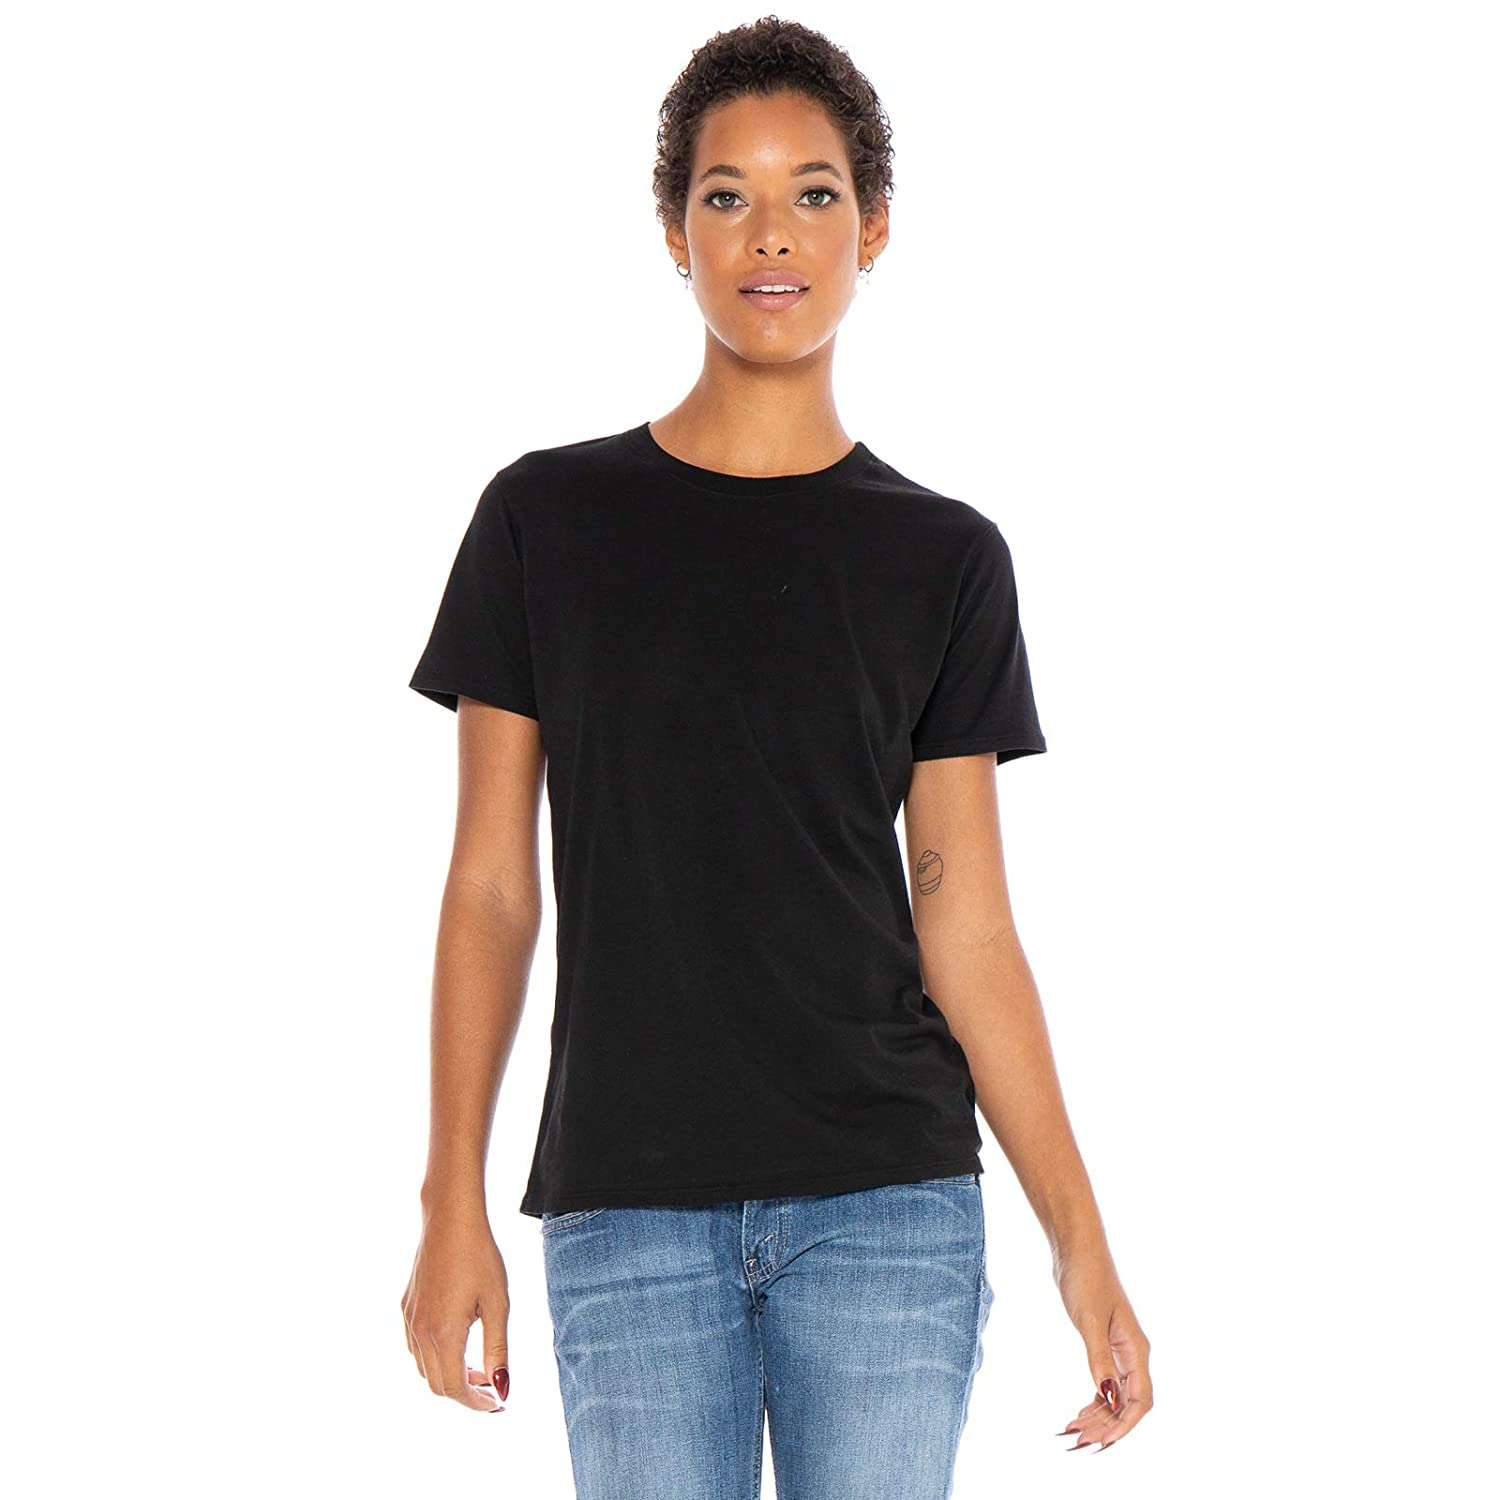 Black Women's Designer TShirt Lightweight Boy Fit Short Sleeve Crew Neck Organic Cotton PreShrunk Embroidered  Made in USA